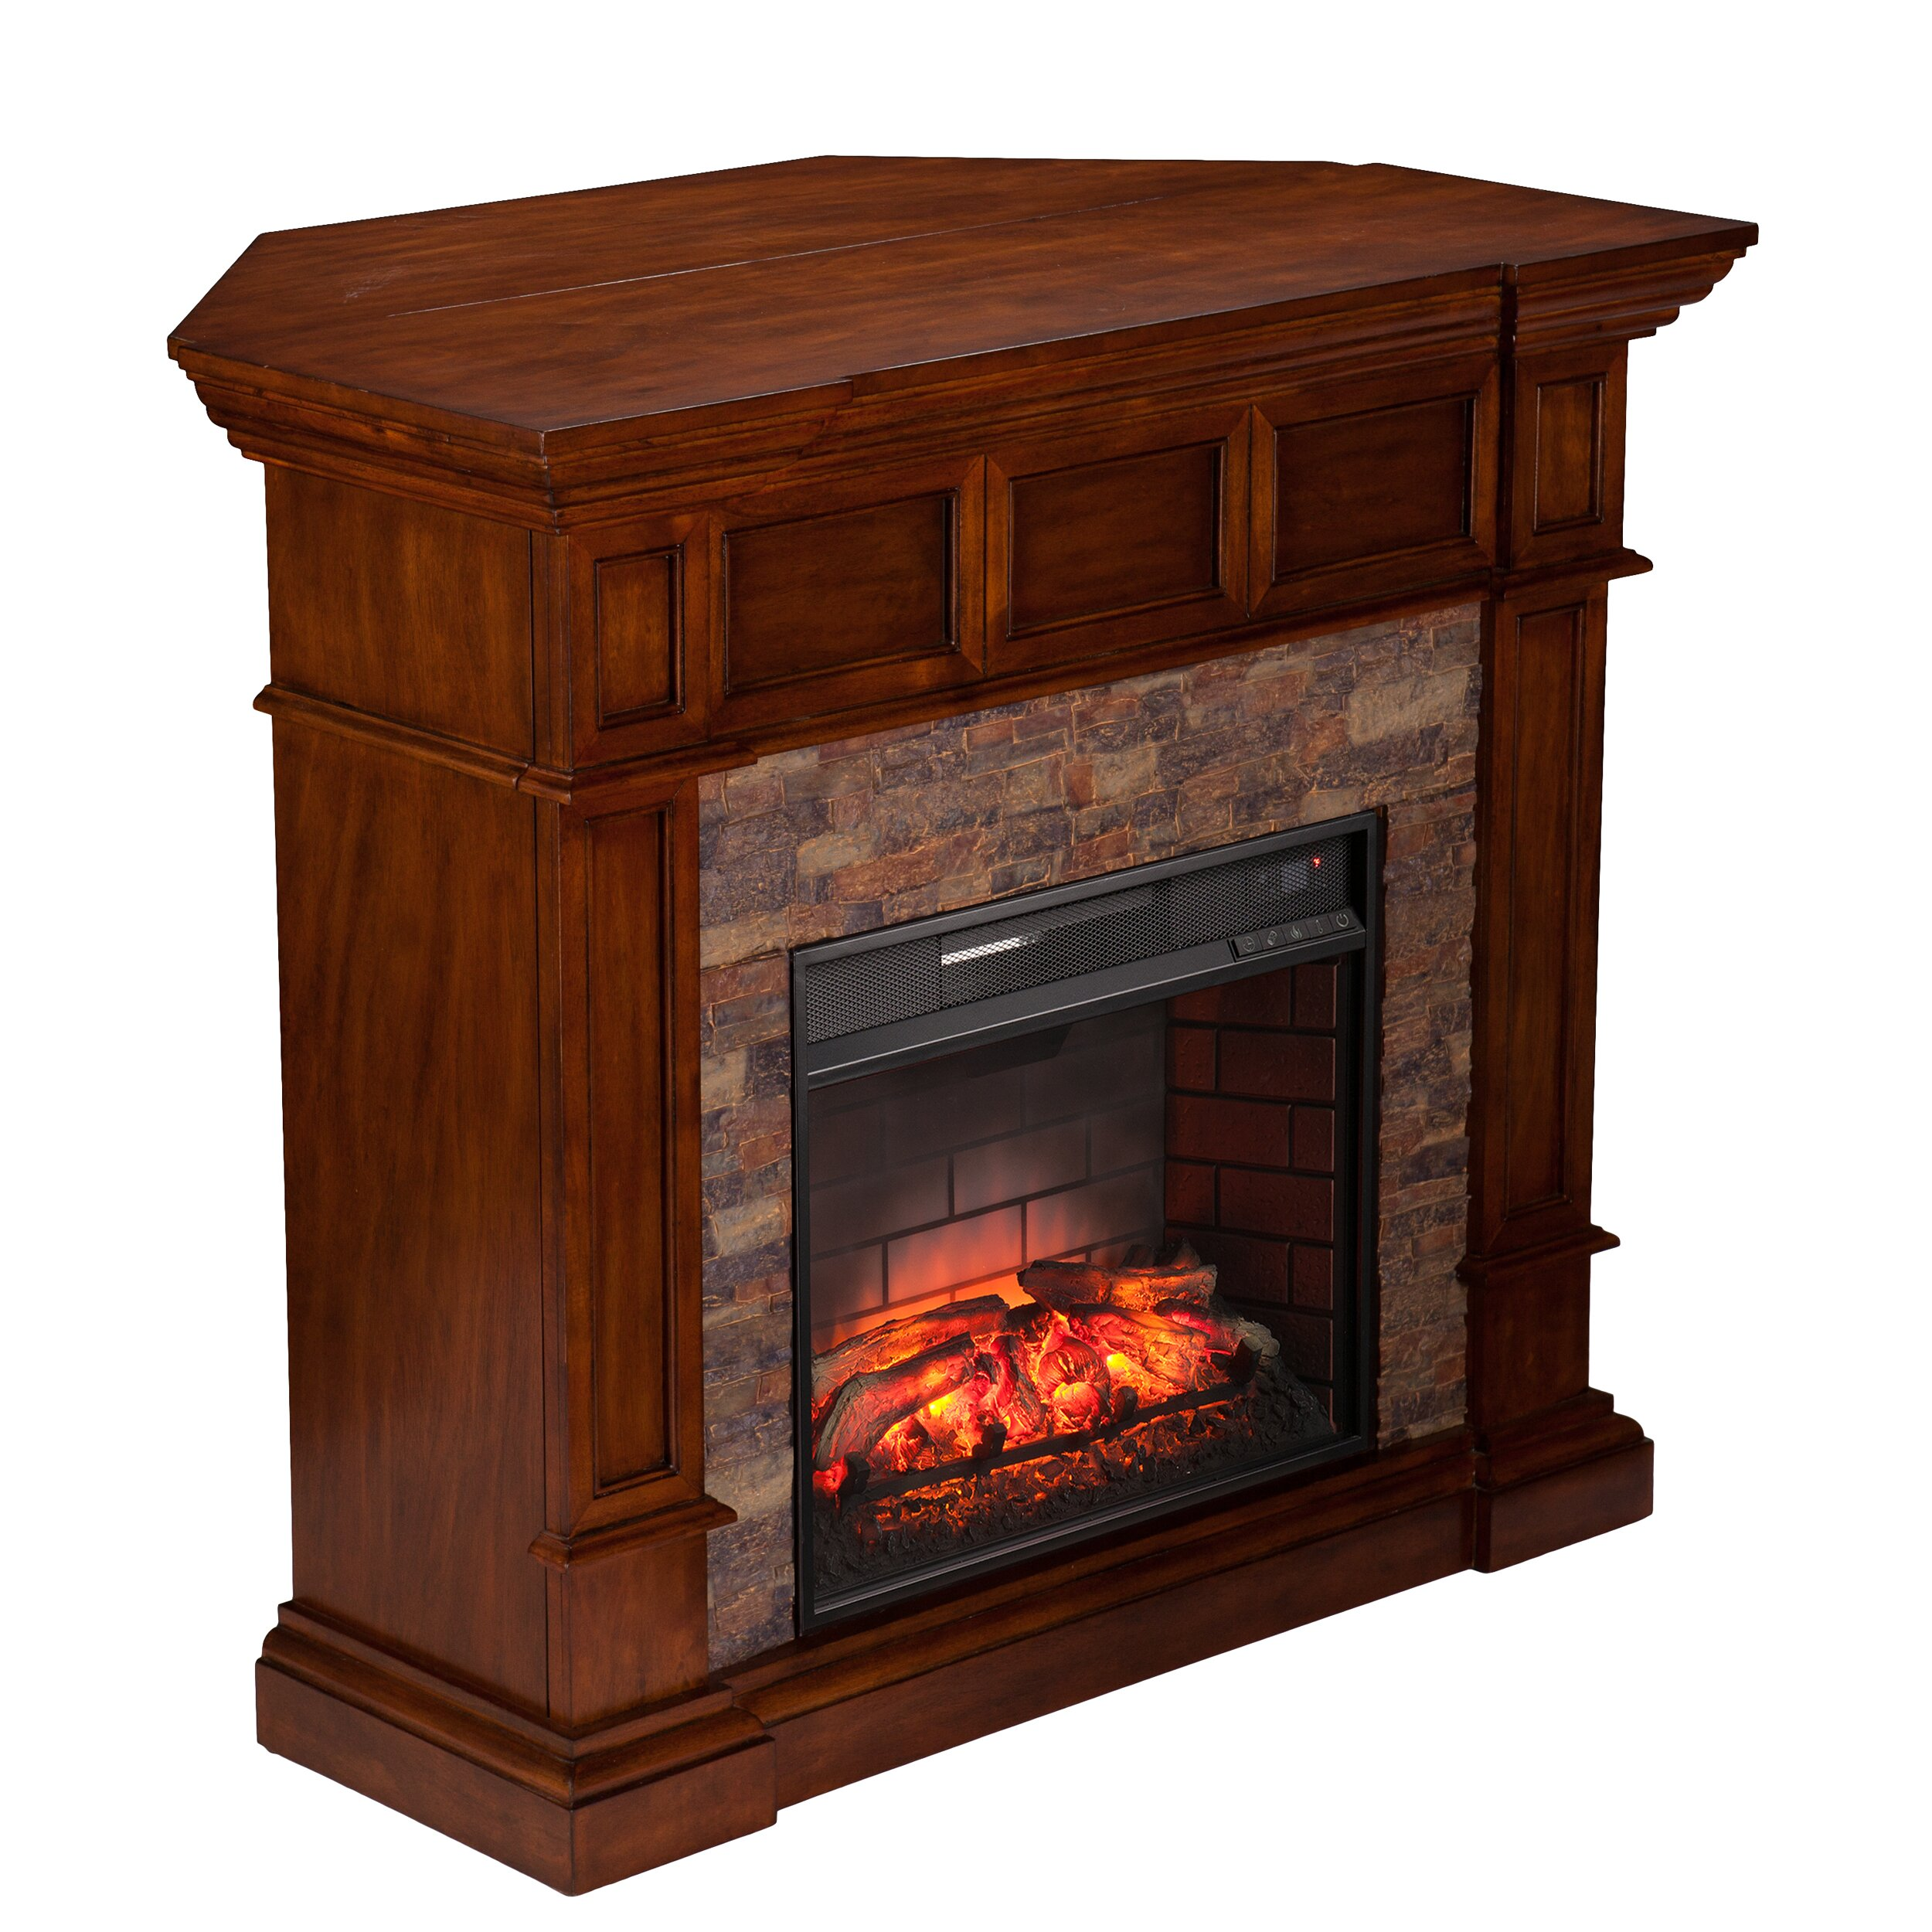 Wildon Home Frazier Corner Convertible Infrared Electric Fireplace Reviews Wayfair